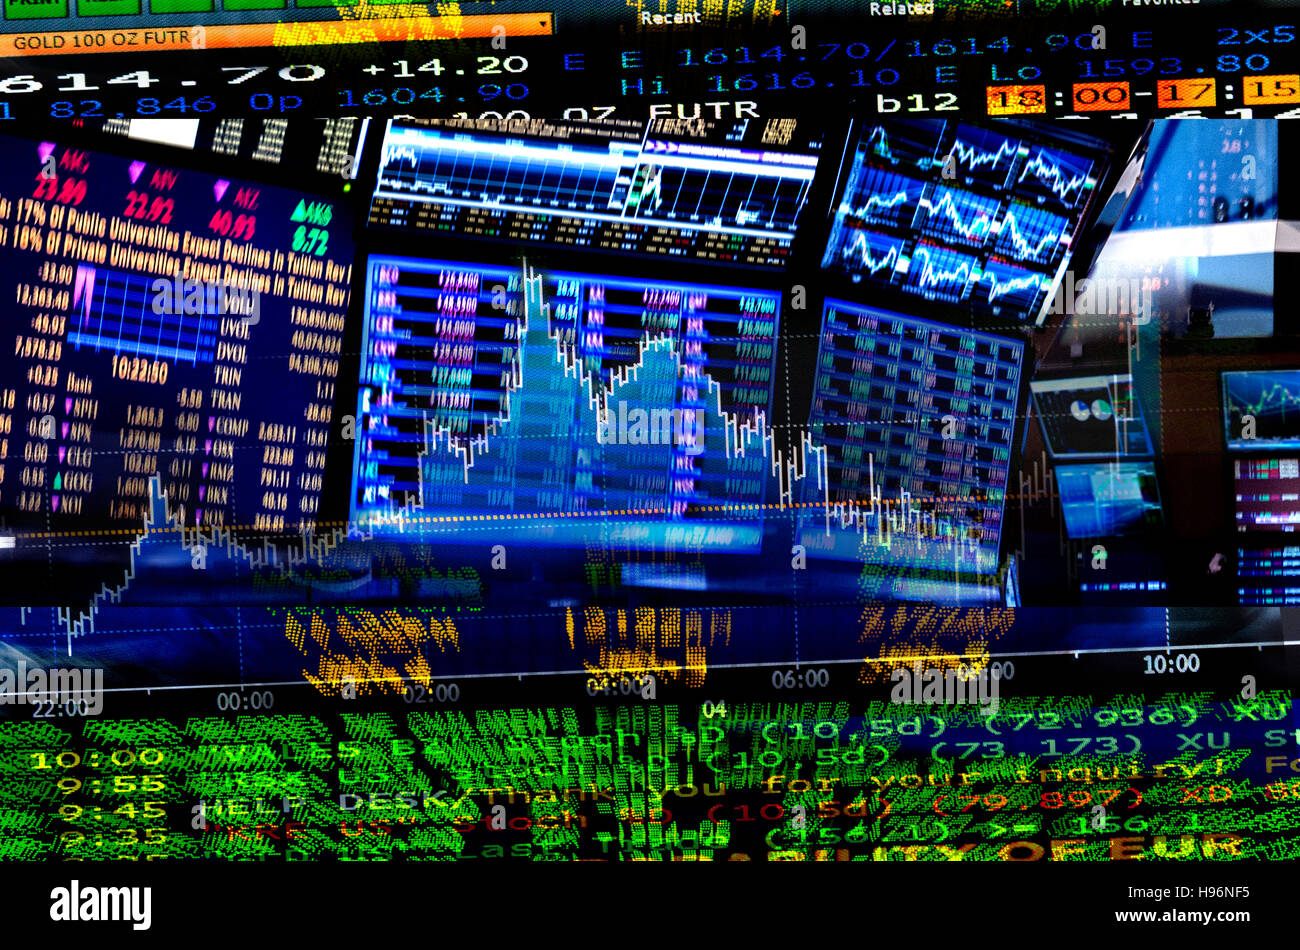 Financial figures on screens - Stock Image